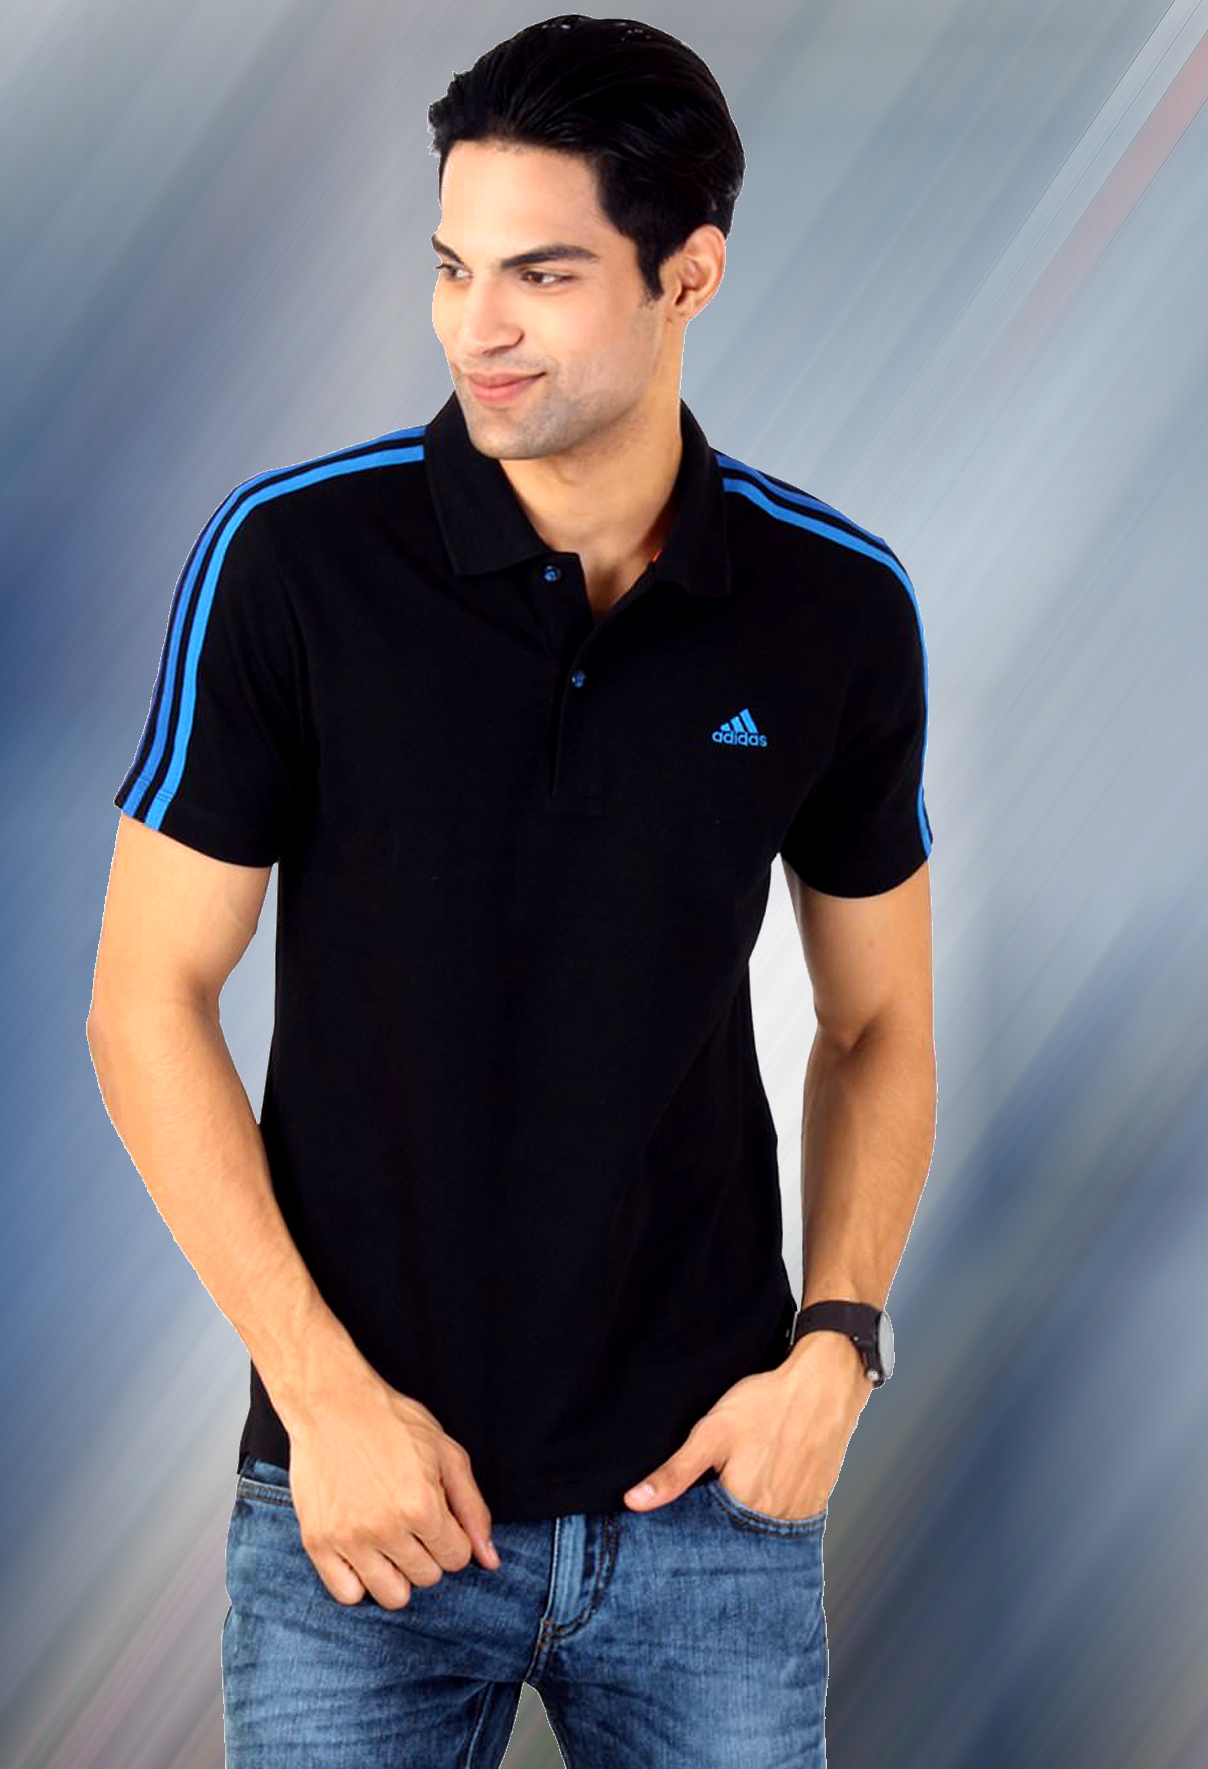 Tee Shirts For Men Photo Album - Fashion Trends and Models